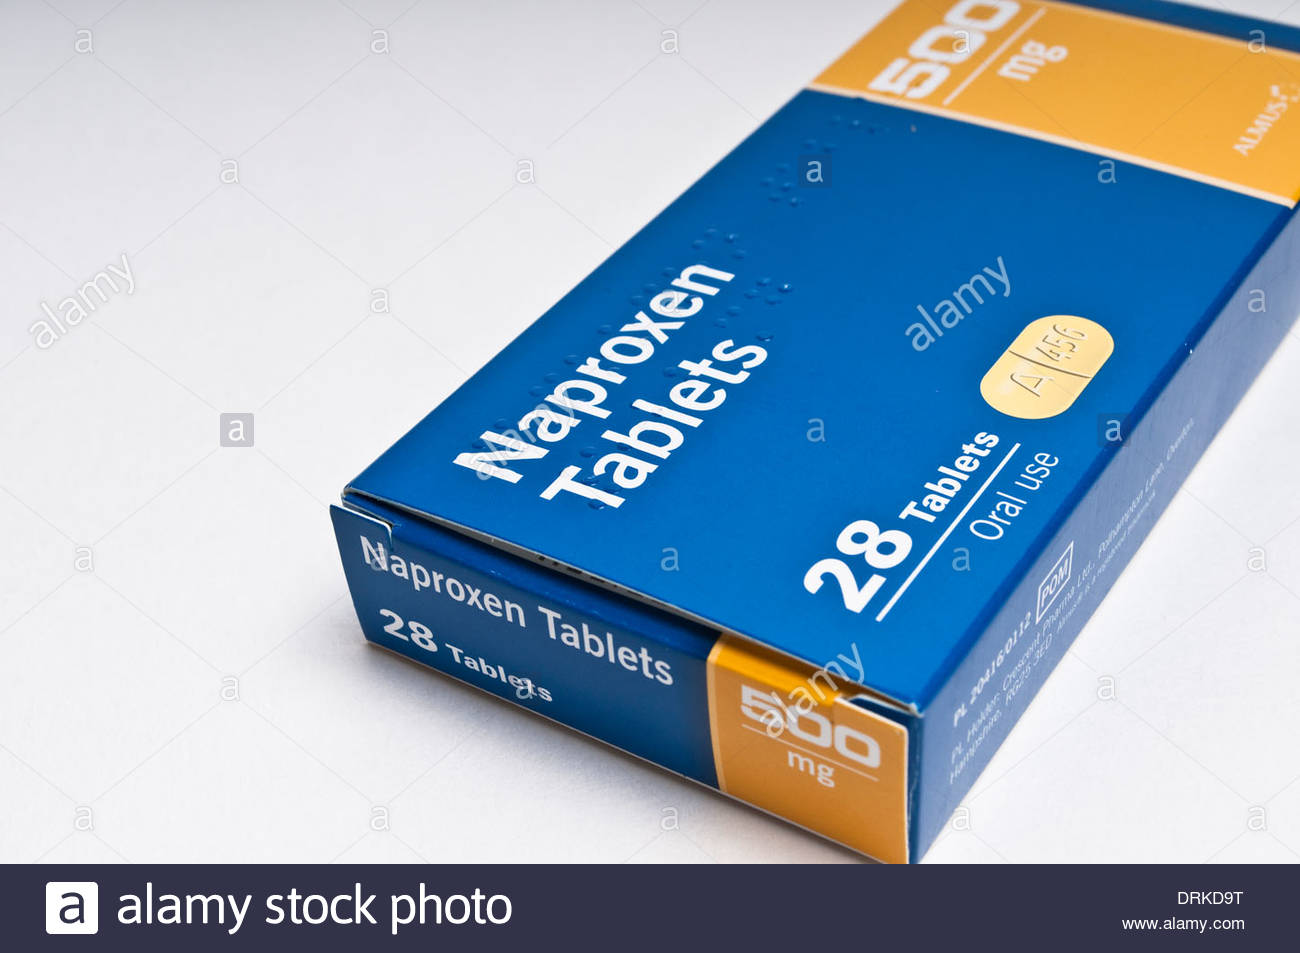 Box of Naproxen tablets used to treat arthritis - Stock Image